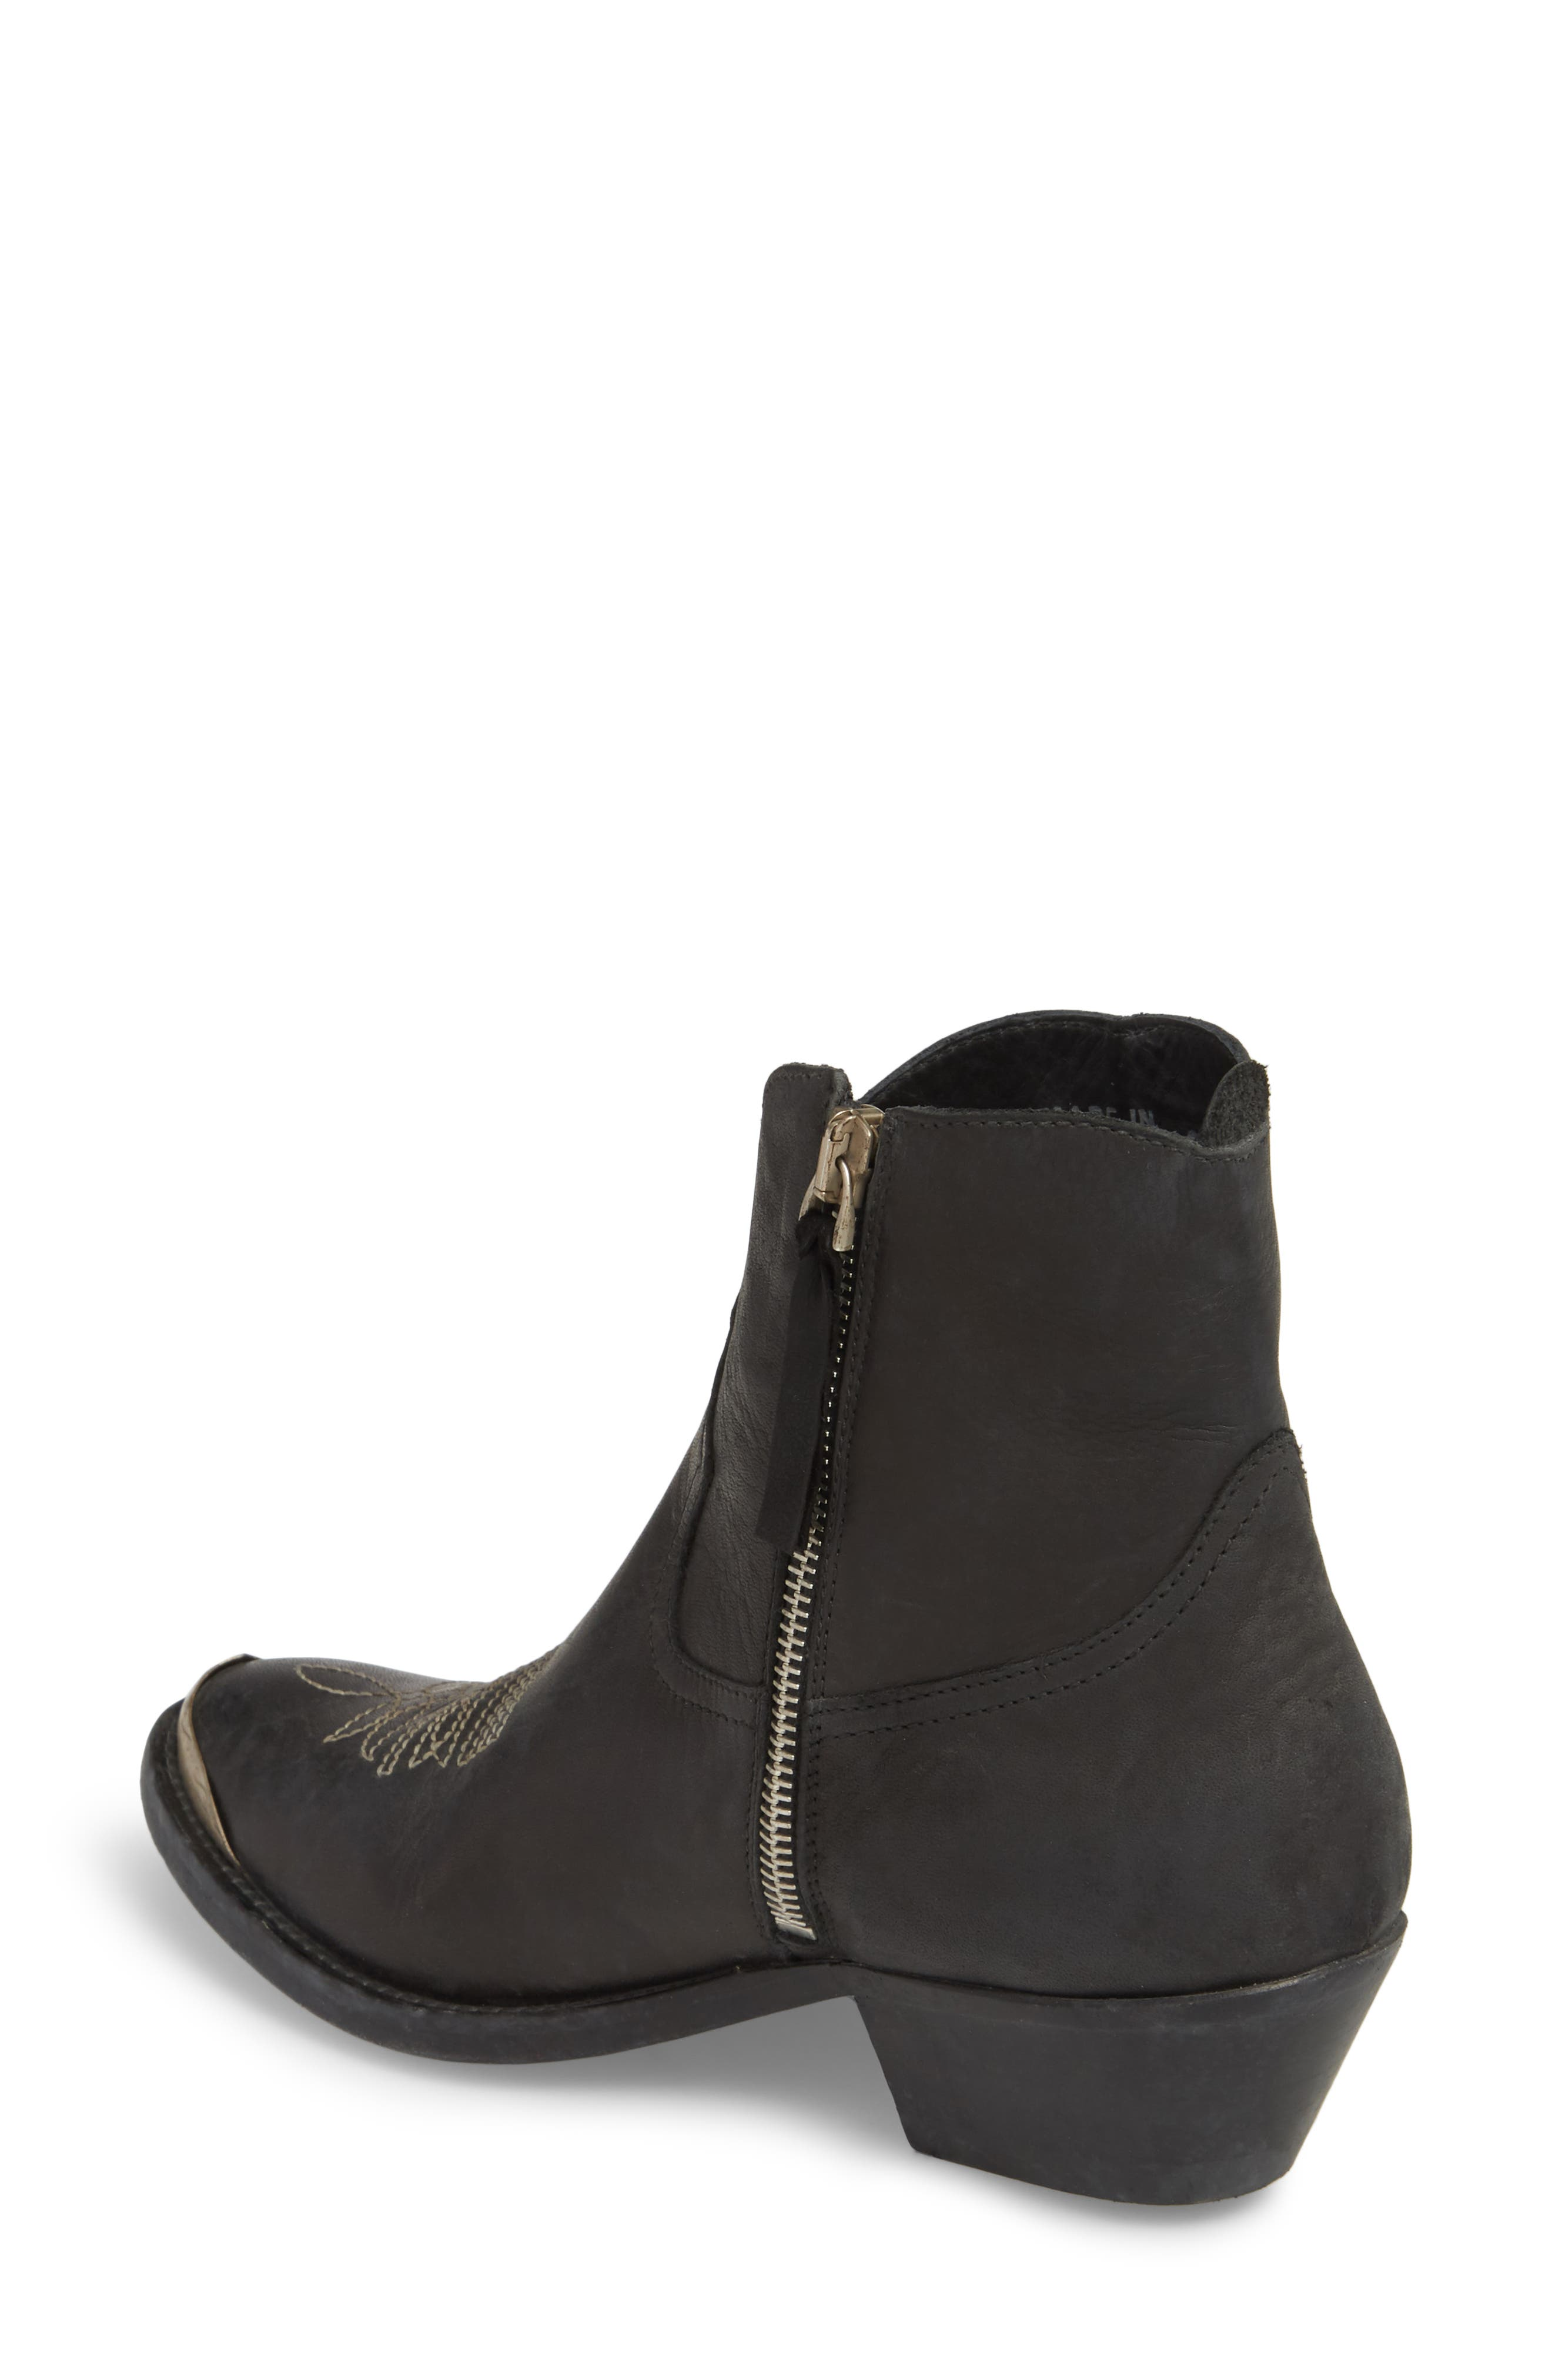 GOLDEN GOOSE,                             Young Western Bootie,                             Alternate thumbnail 2, color,                             BLACK